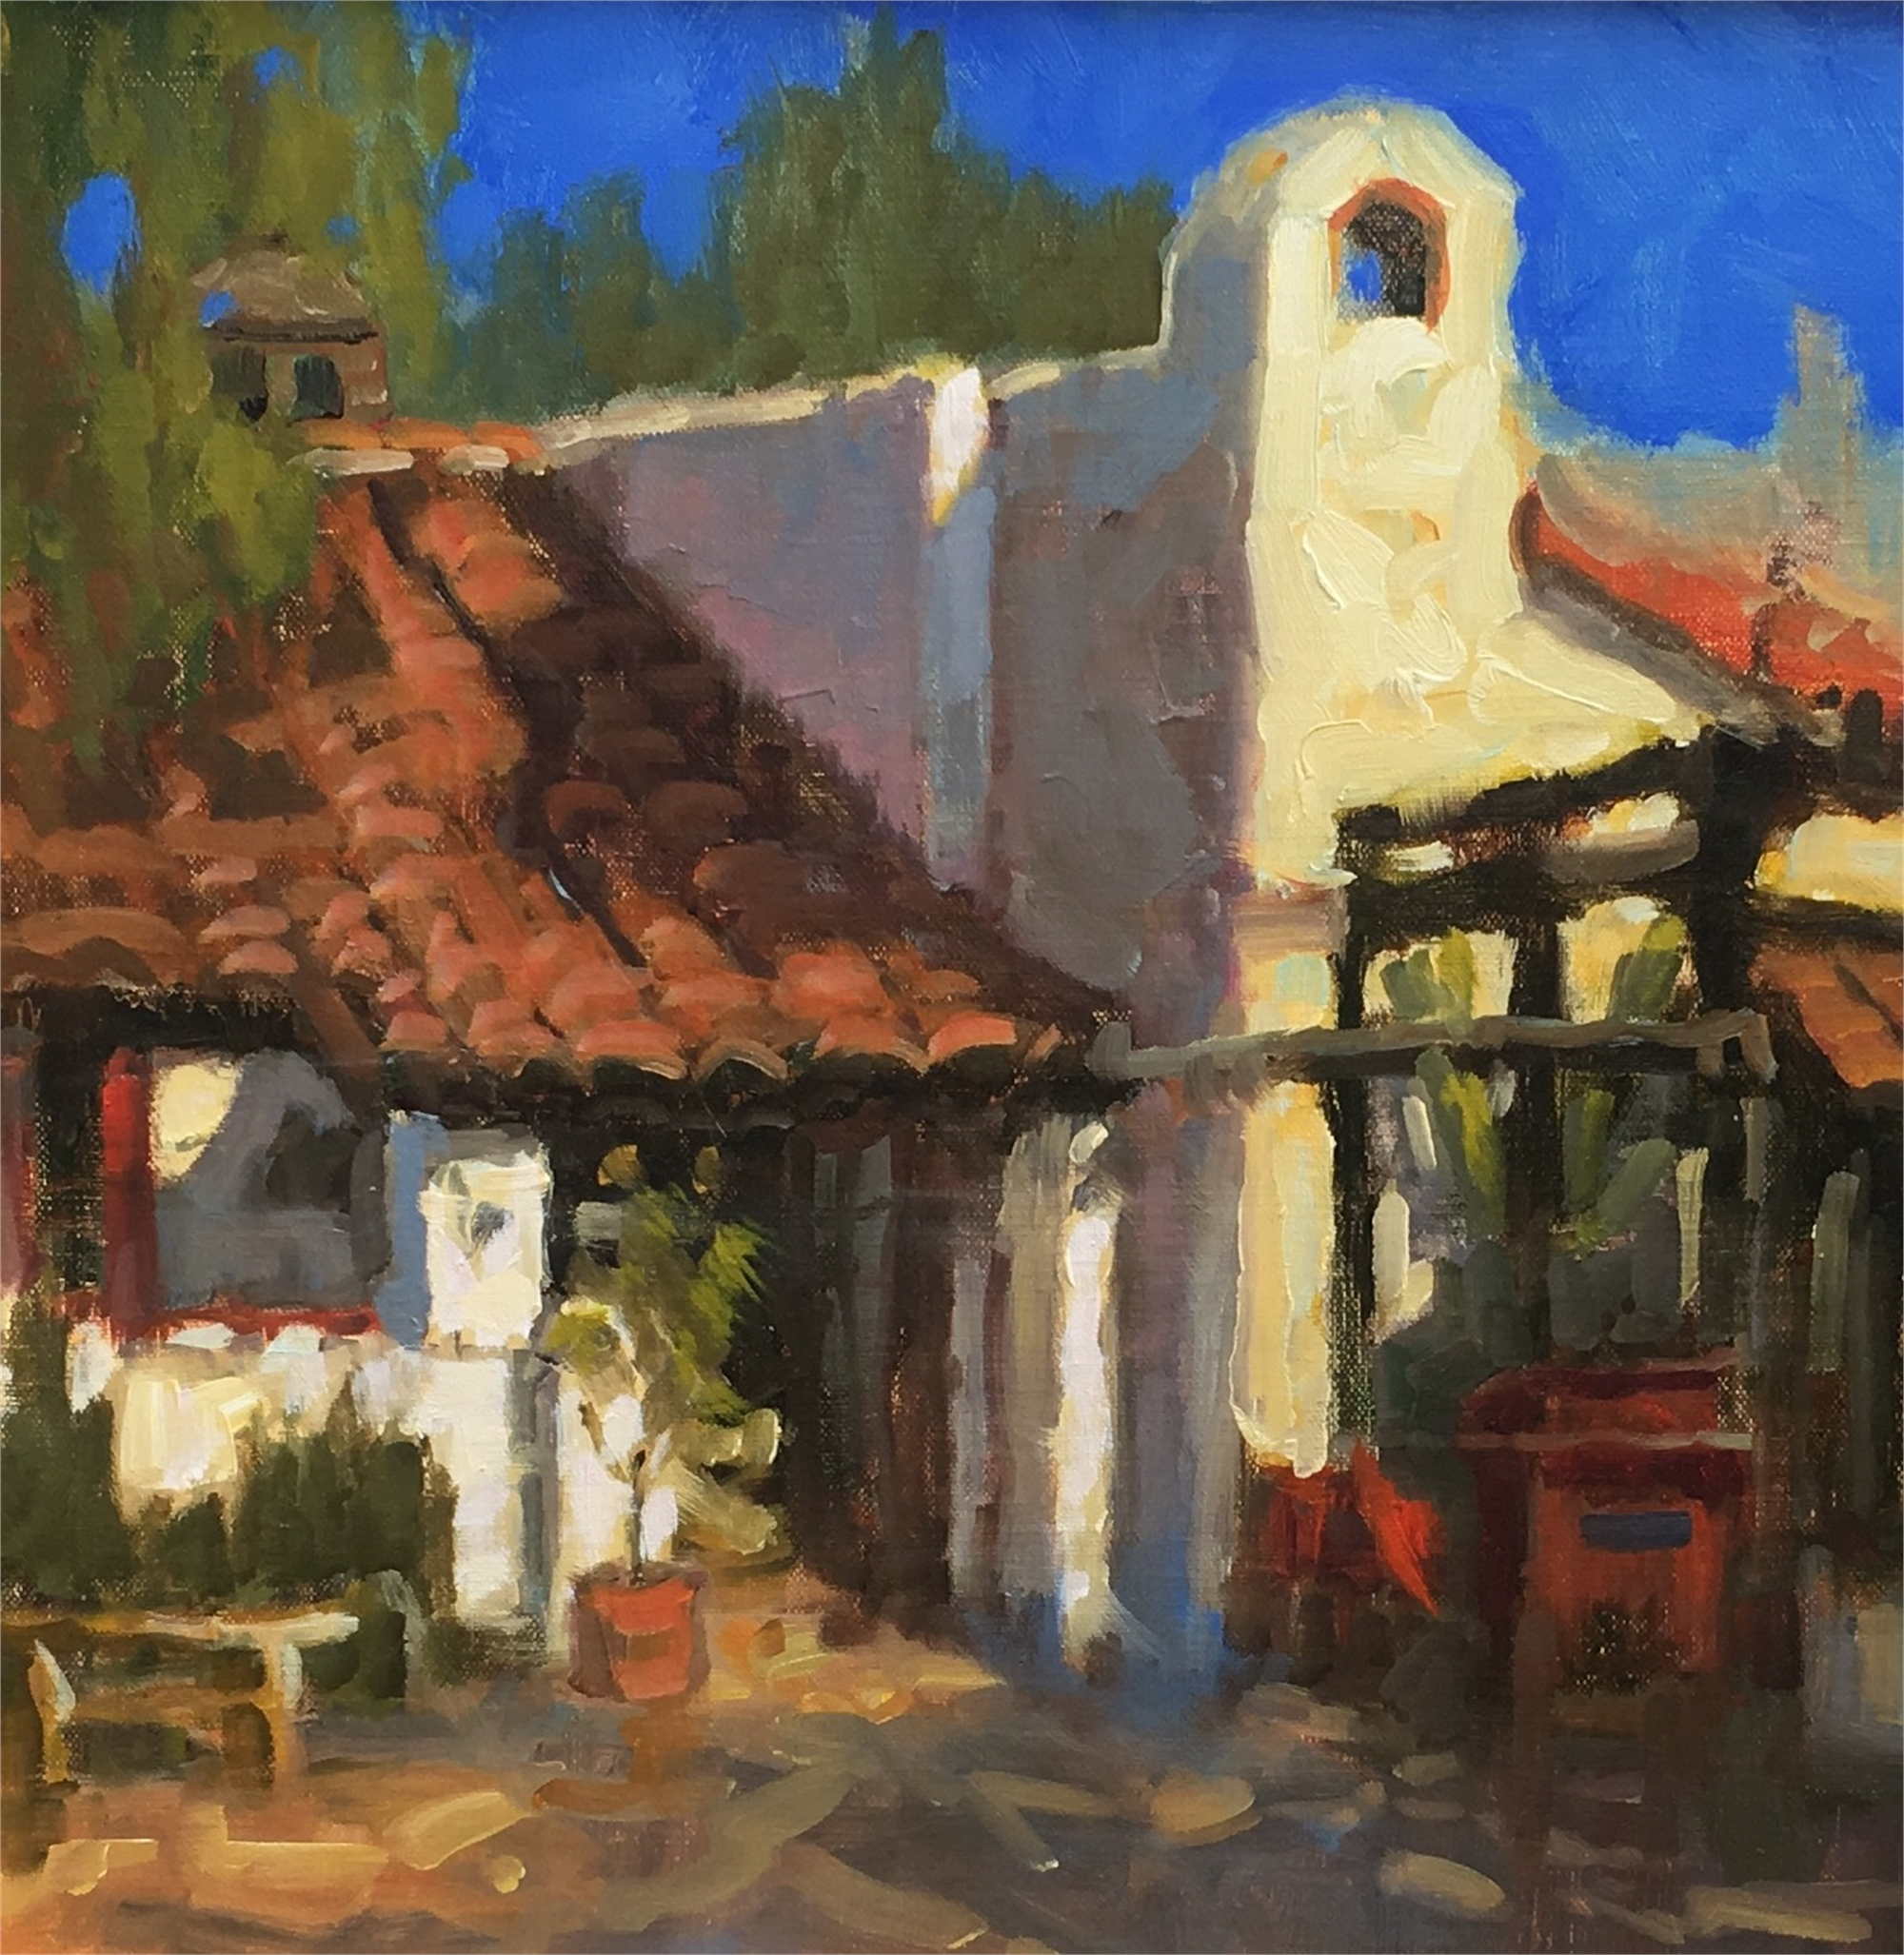 Mission Bells by Laurie Meyer